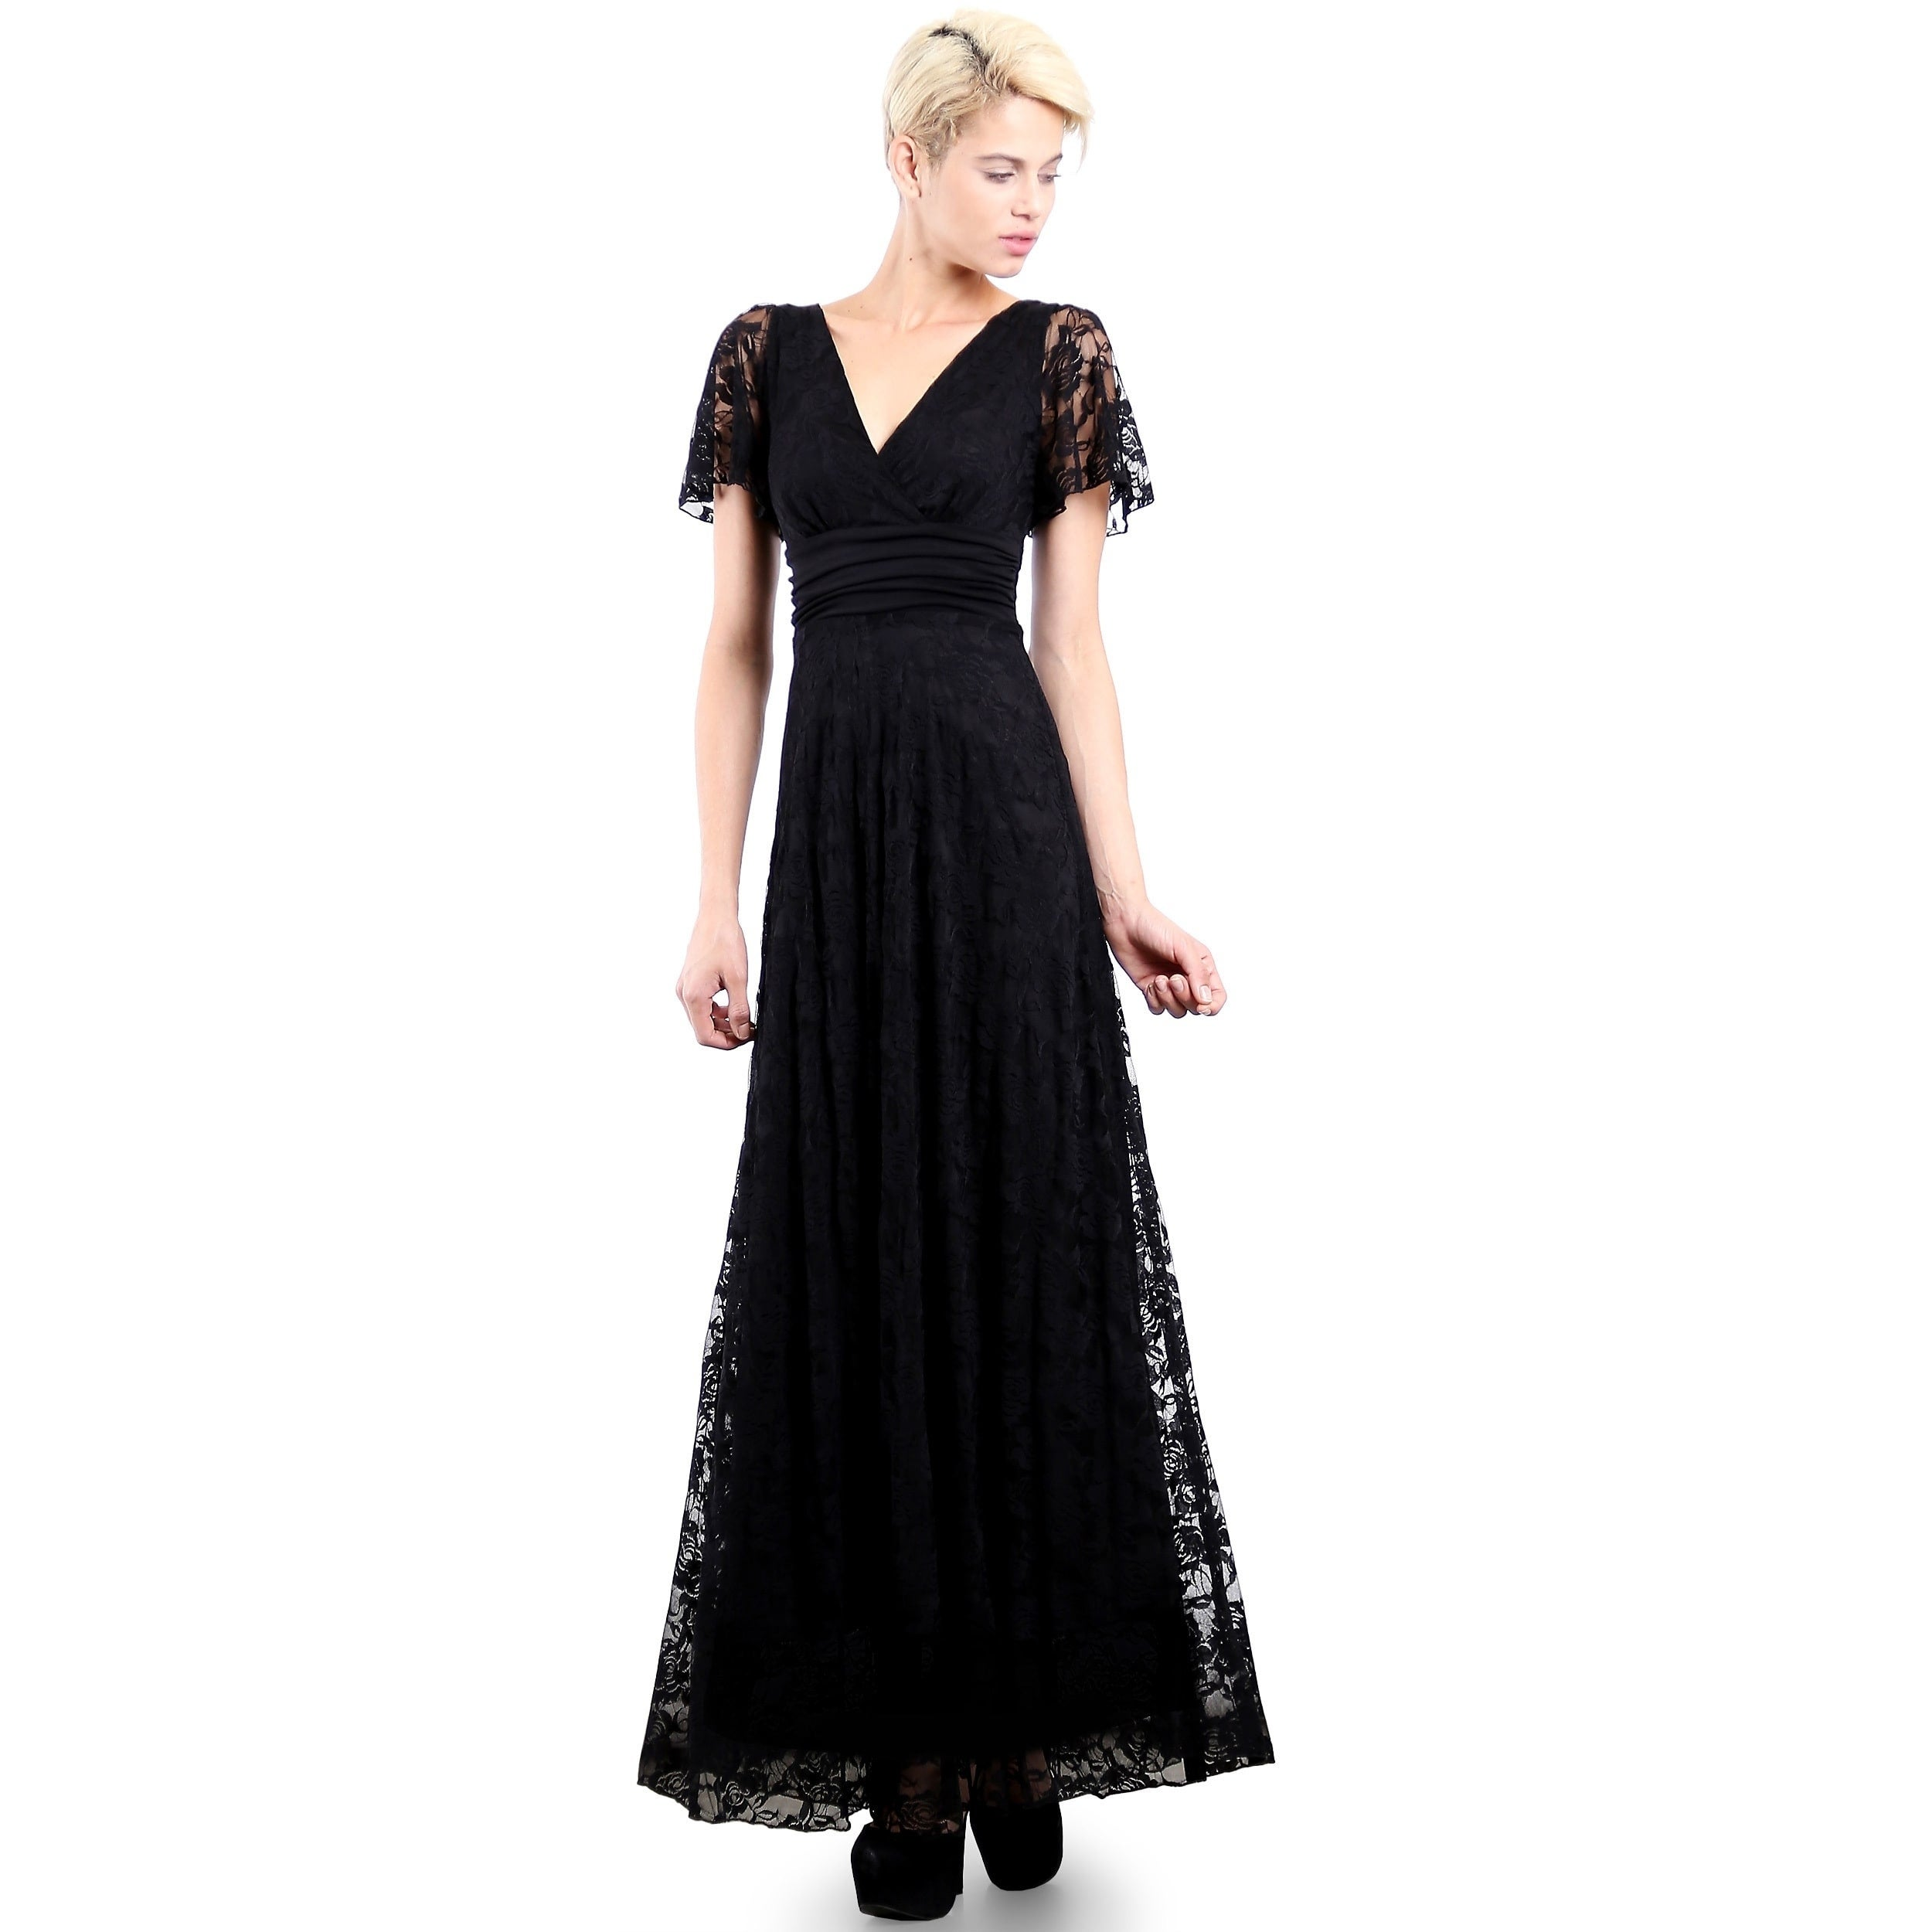 d37a65c470be Evanese Women's Elegant Lace Evening Party Formal Long Dress Gown with Empire  Waist Full Skirt and Short Sleeves